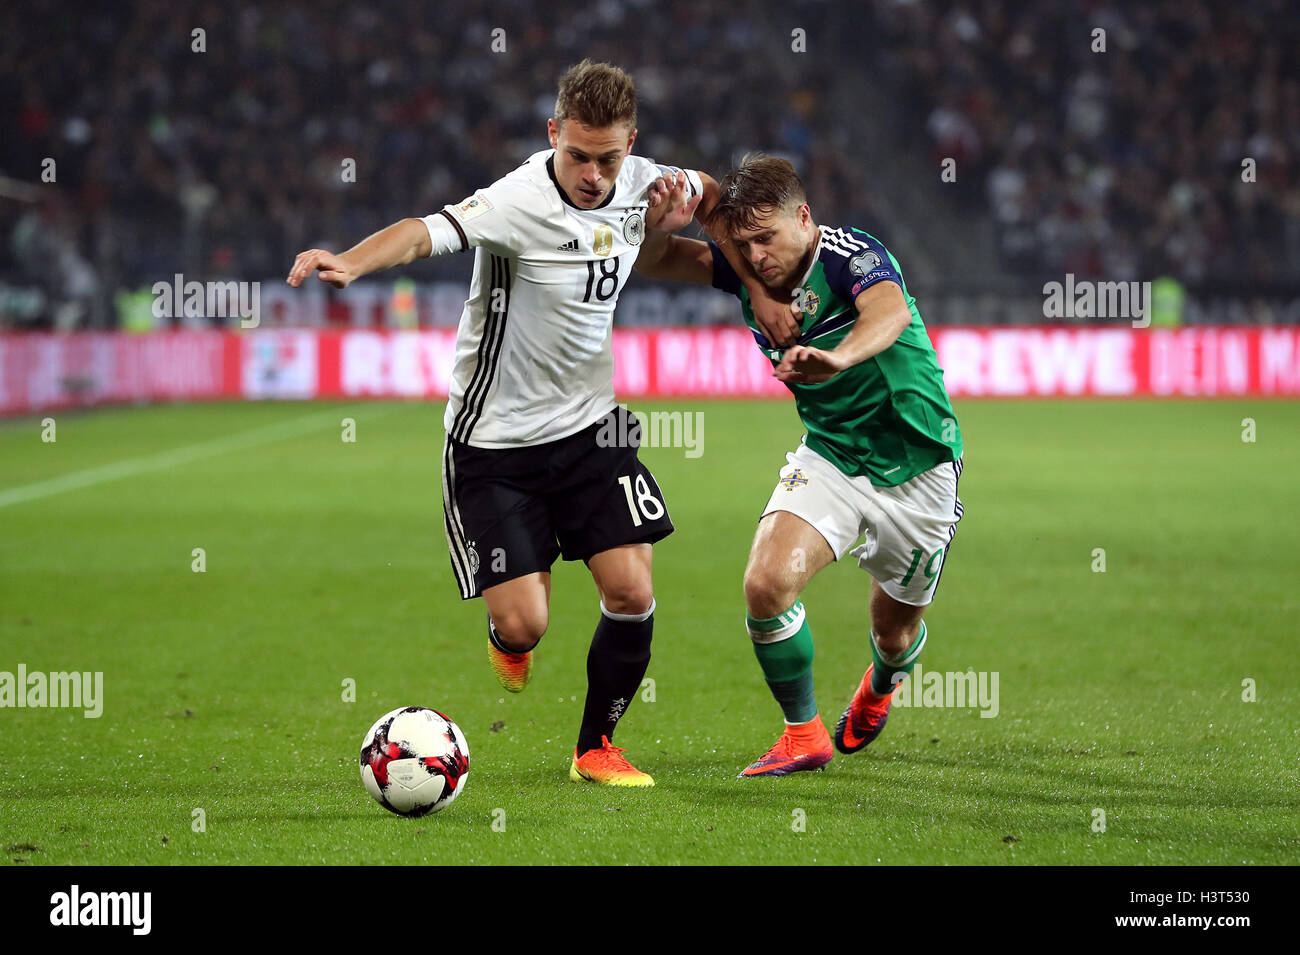 2758cf398a Germany s Joshua Kimmich (left) and Northern Ireland s Jamie Ward battle  for the ball during the 2018 FIFA World Cup Qualifying match at the HDI  Arena